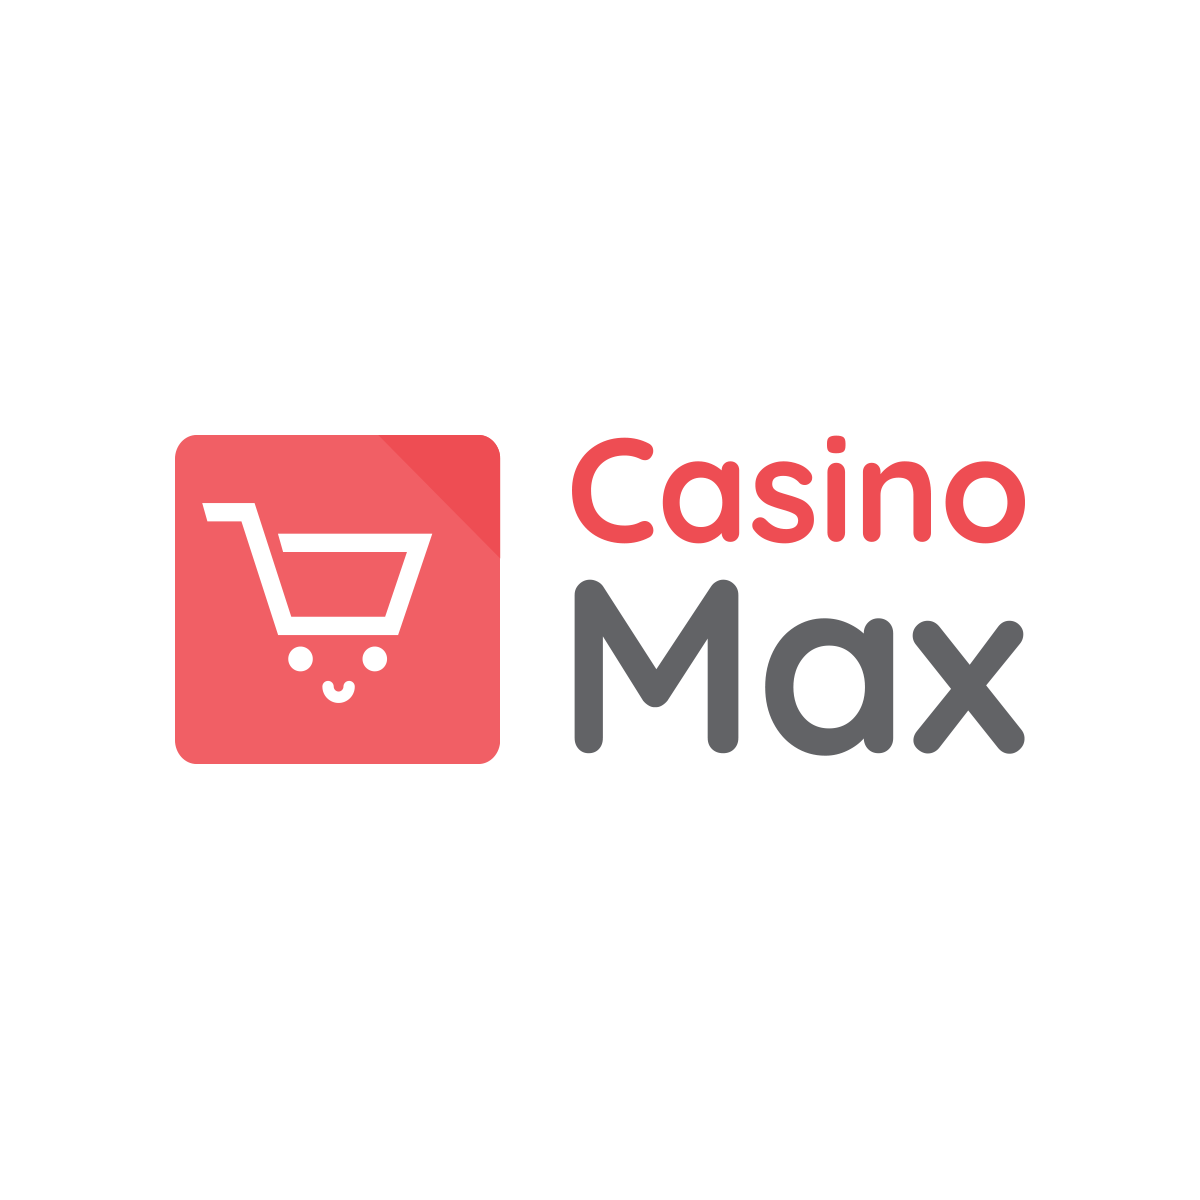 casinomaxfr